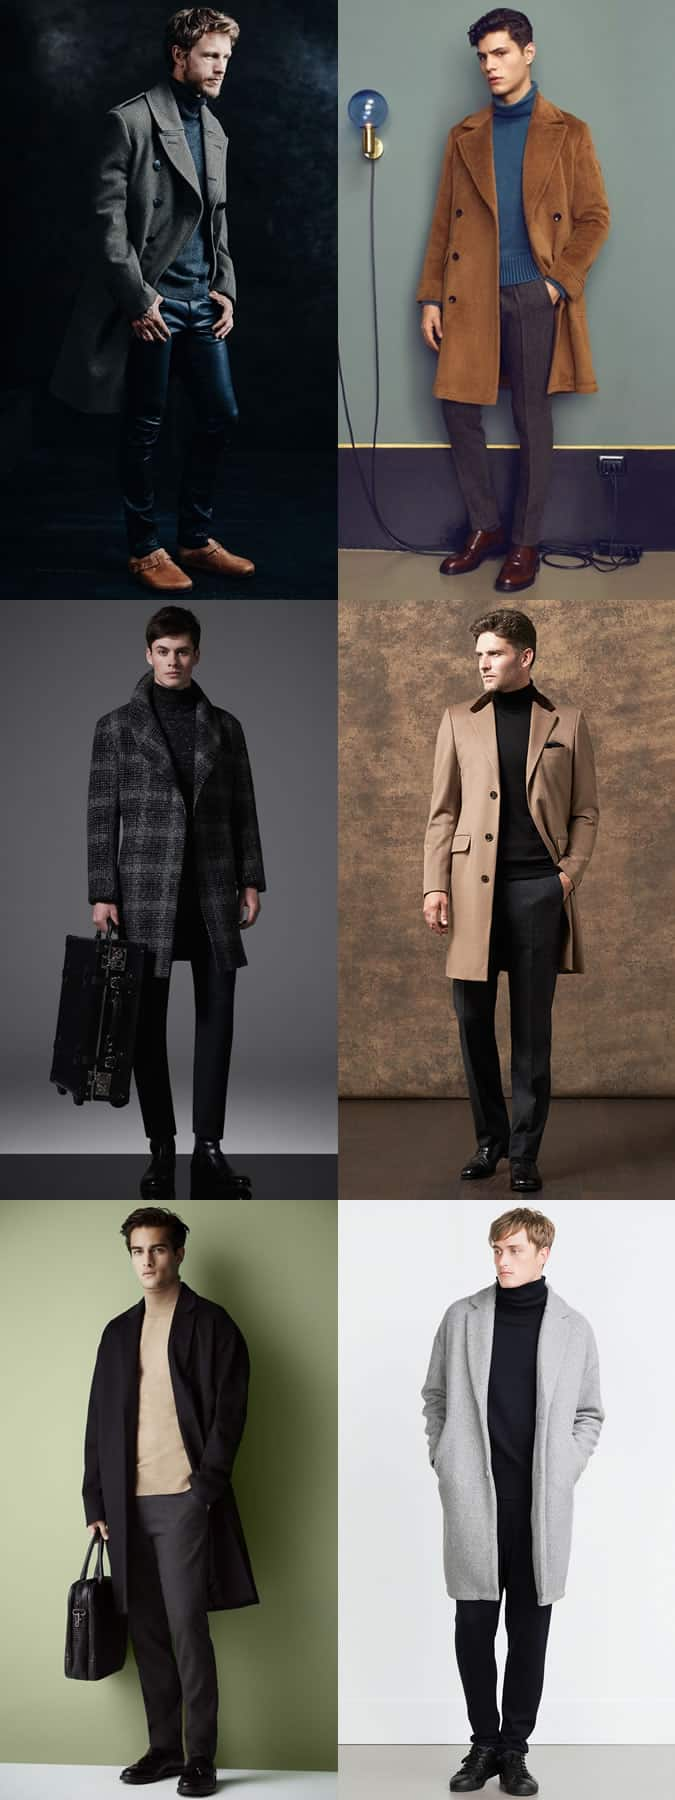 Men's Roll Necks With Overcoats Outfit Inspiration Lookbook